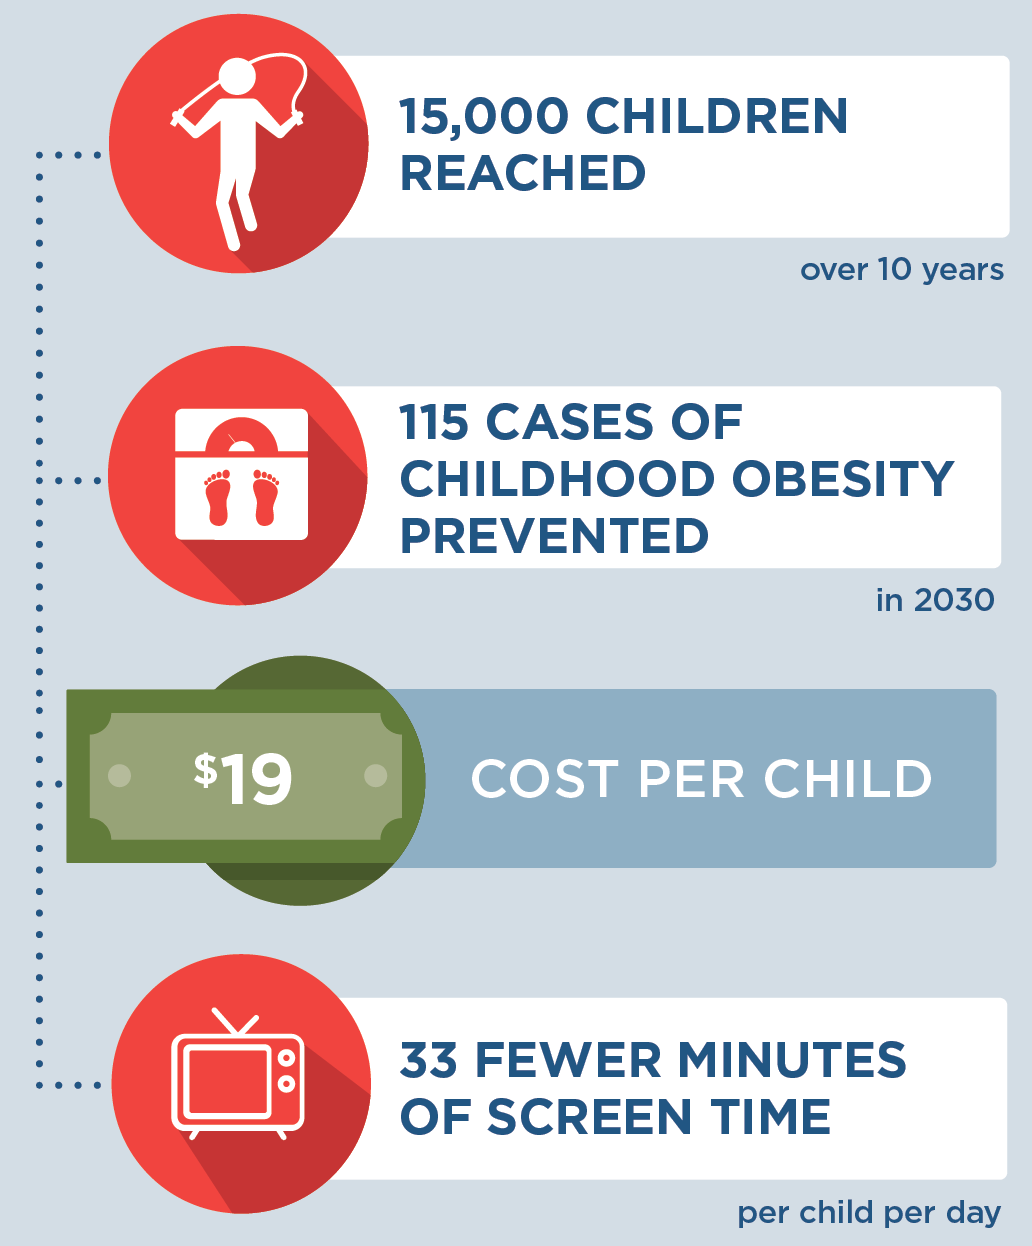 15,000 children would be reached over 10 years; 115 cases of childhood obesity would be prevented in 2030; this strategy would cost $19 per child to implement; children reached by this strategy would experience 33 fewer minutes of screen time per child per day